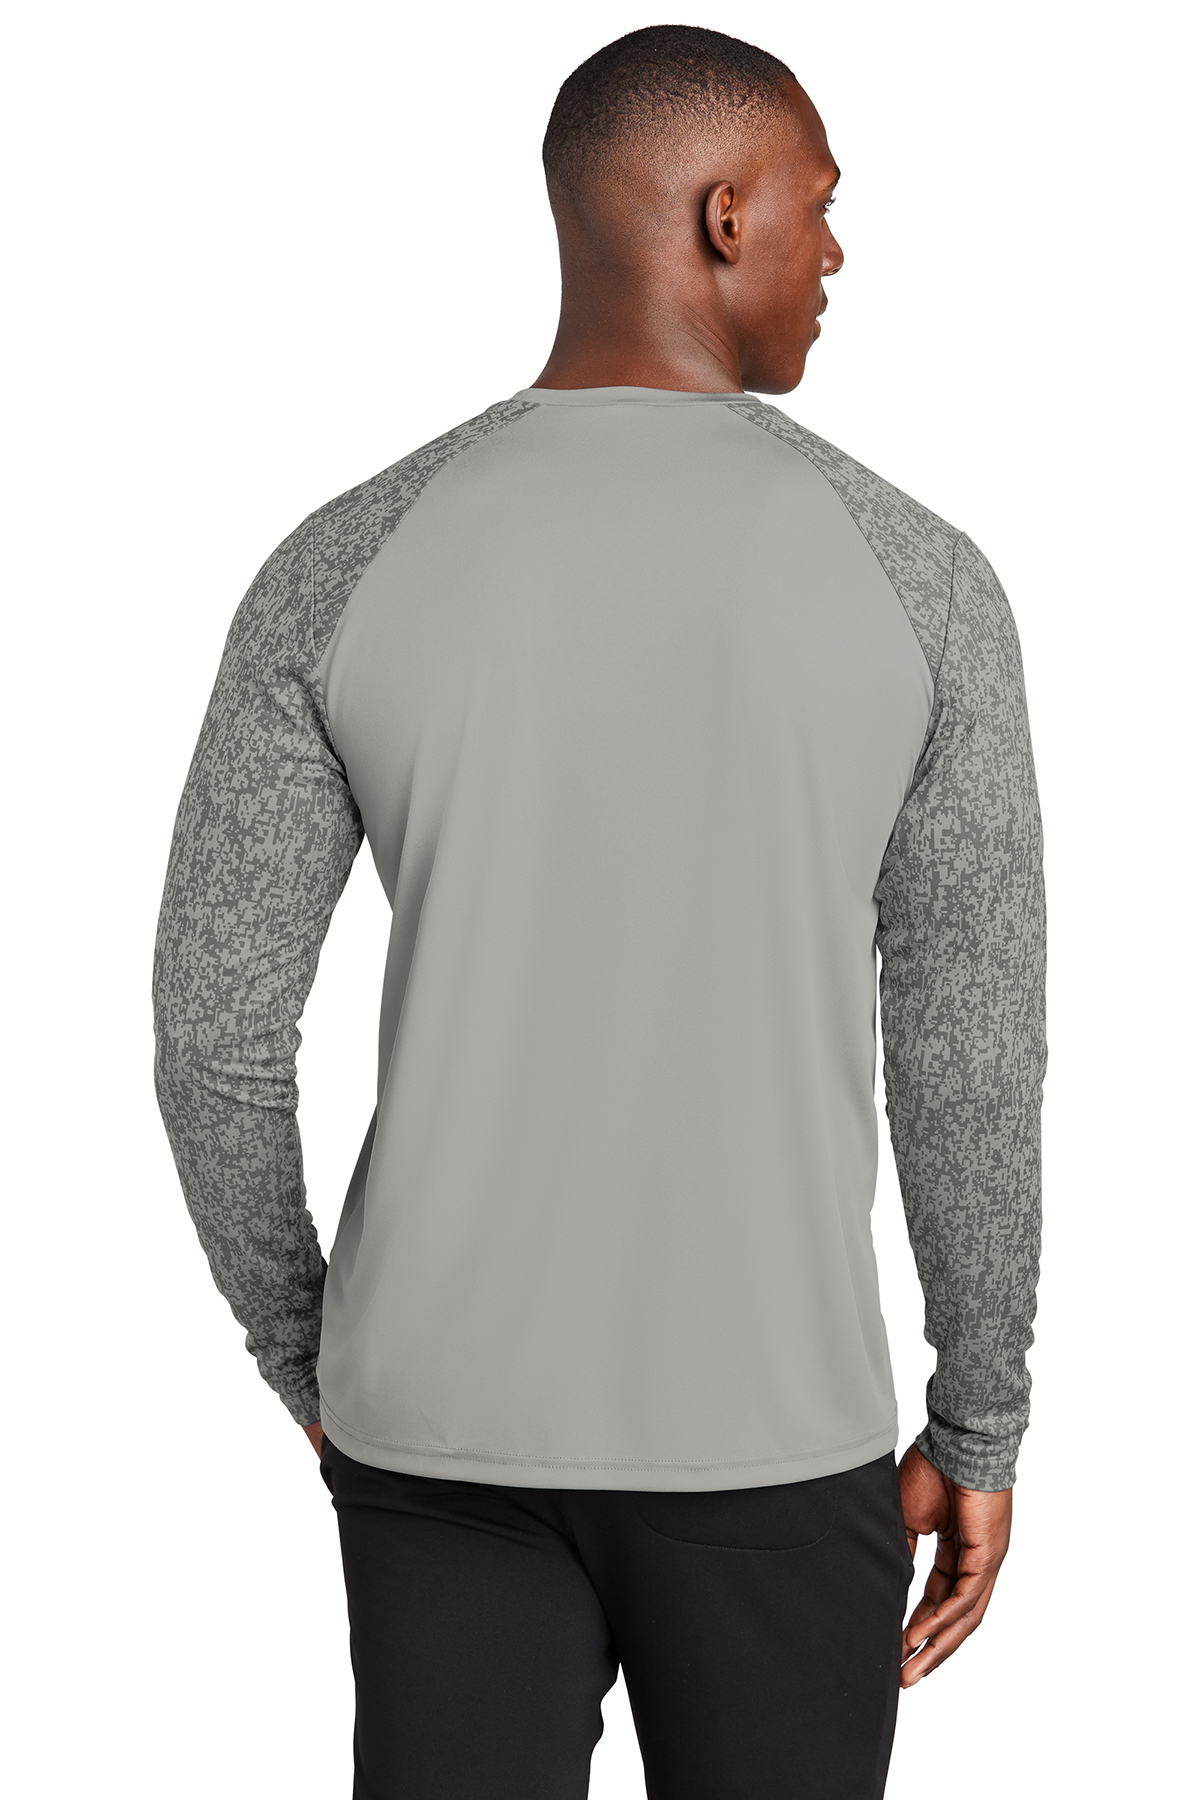 Sport Tek Long Sleeve Digi Camo Tee Performance T Shirts Sanmar From prize money to player salaries. sport tek long sleeve digi camo tee performance t shirts sanmar